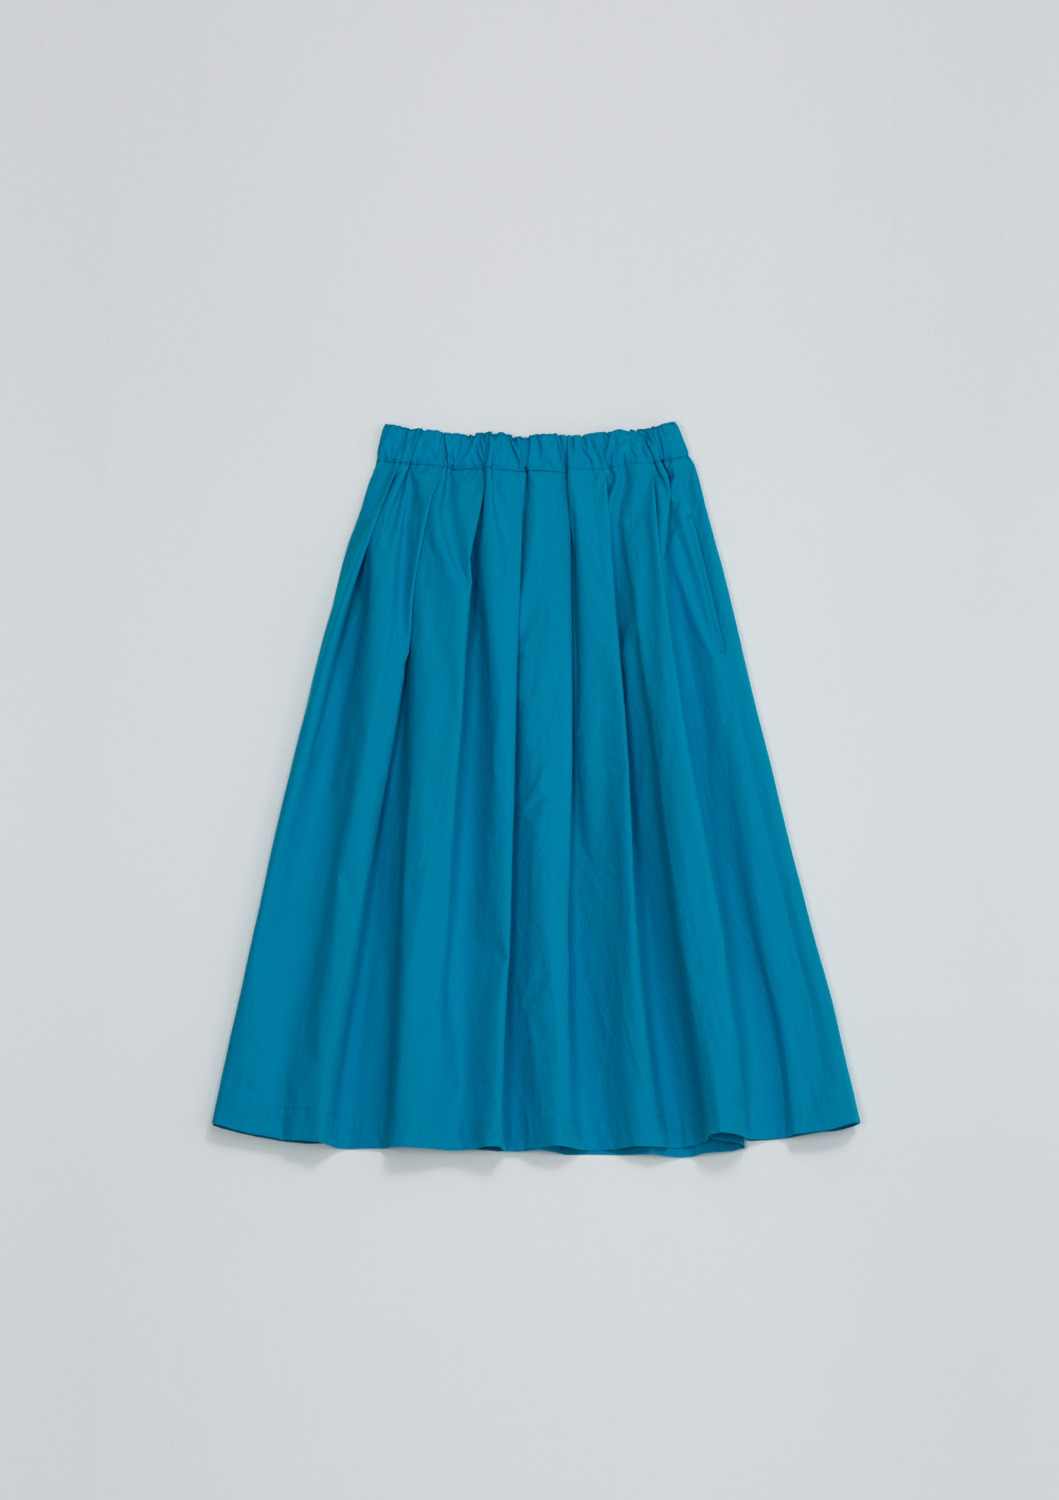 Layla Skirt - Aqua Blue Cotton